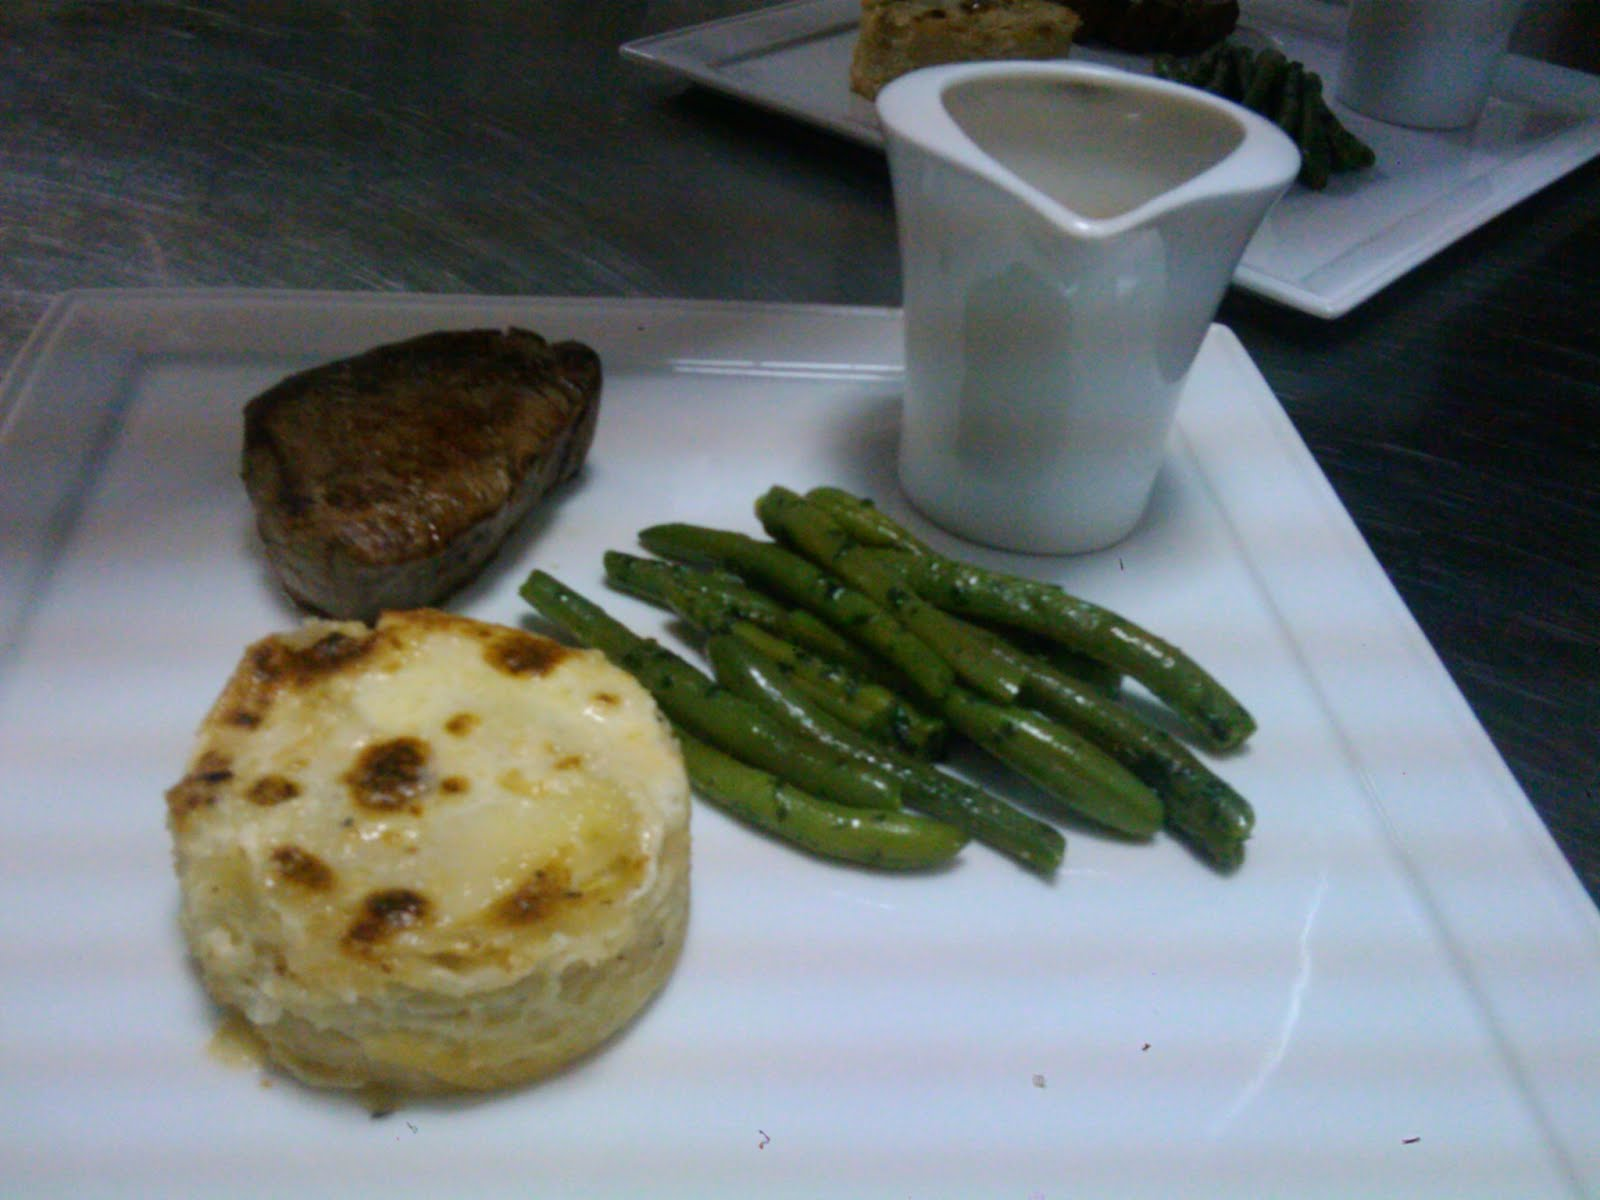 filet de Boeuf au Gratin dauphinois